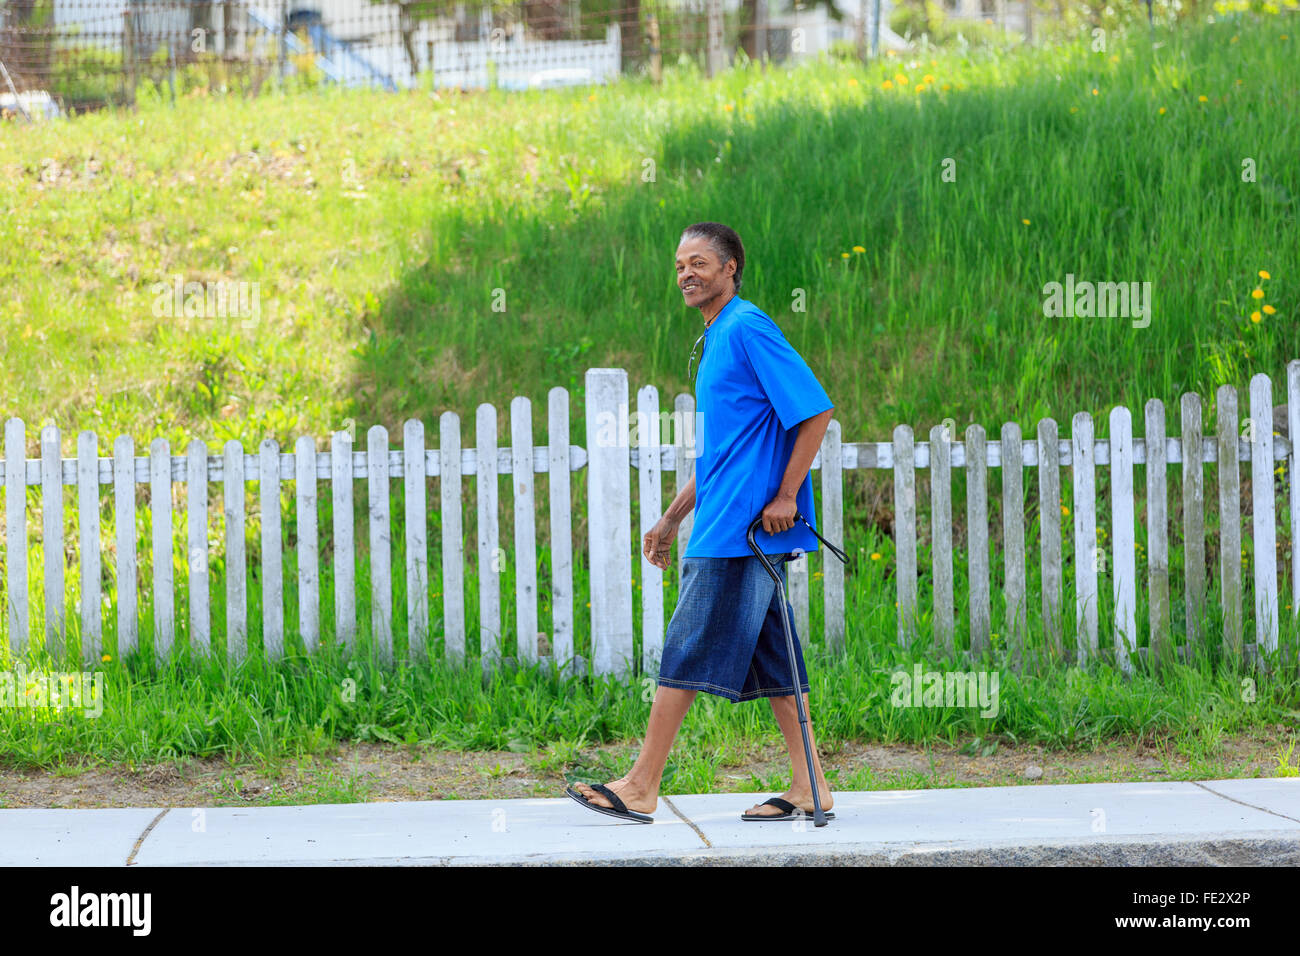 Man with Traumatic Brain Injury relaxing with his cane in his neighborhood - Stock Image